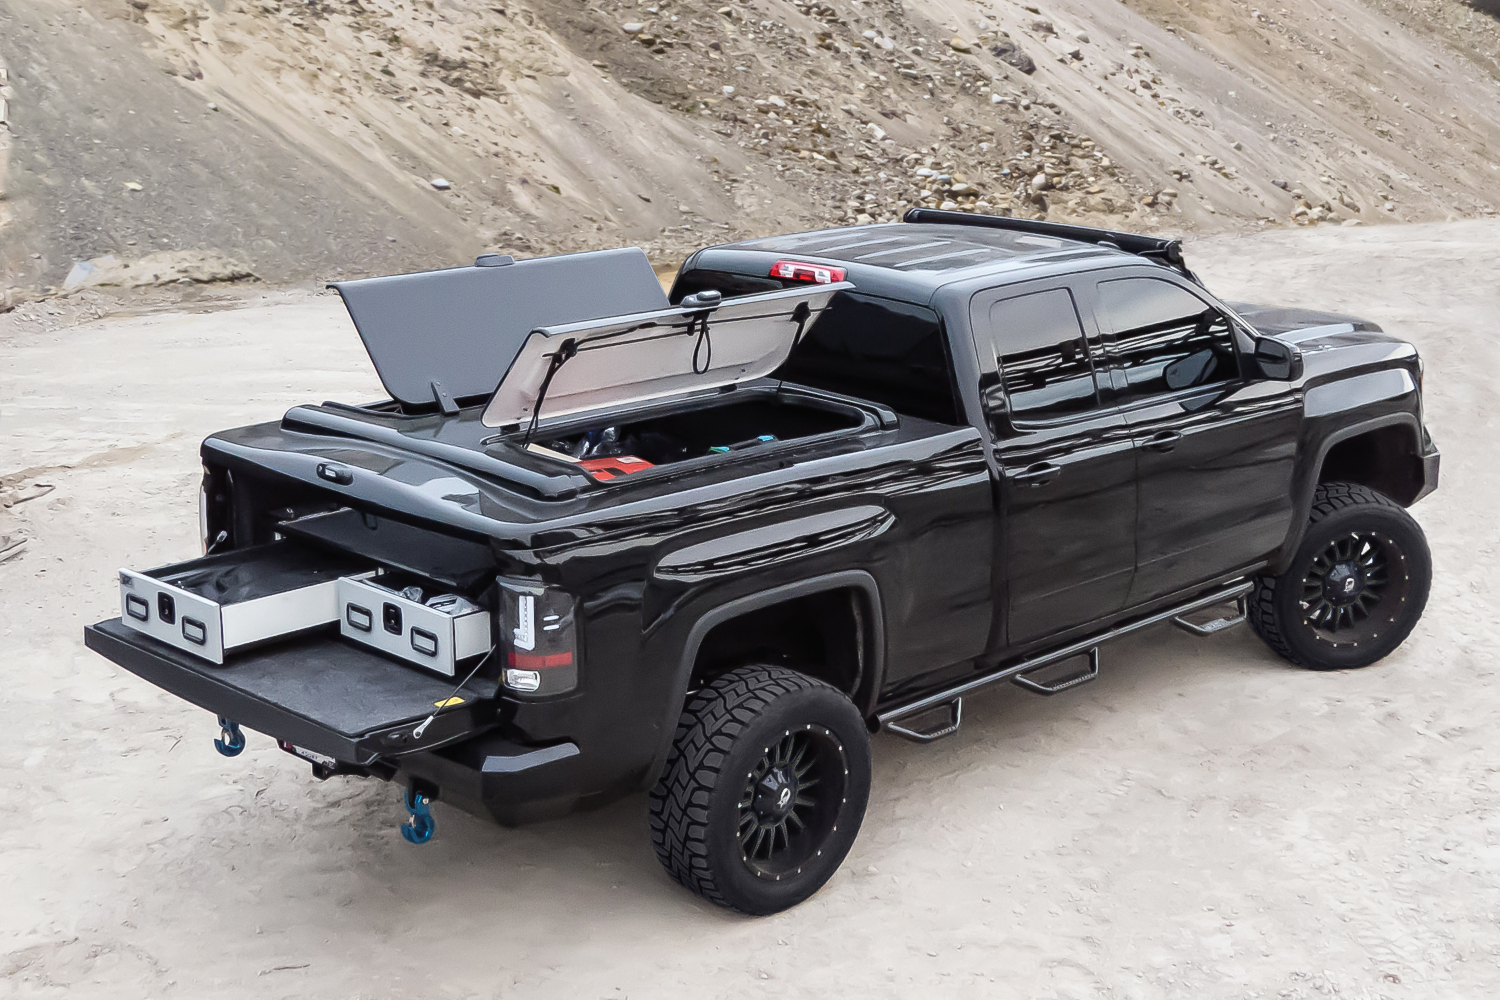 3DL_GMC_Sierra_Black_1500